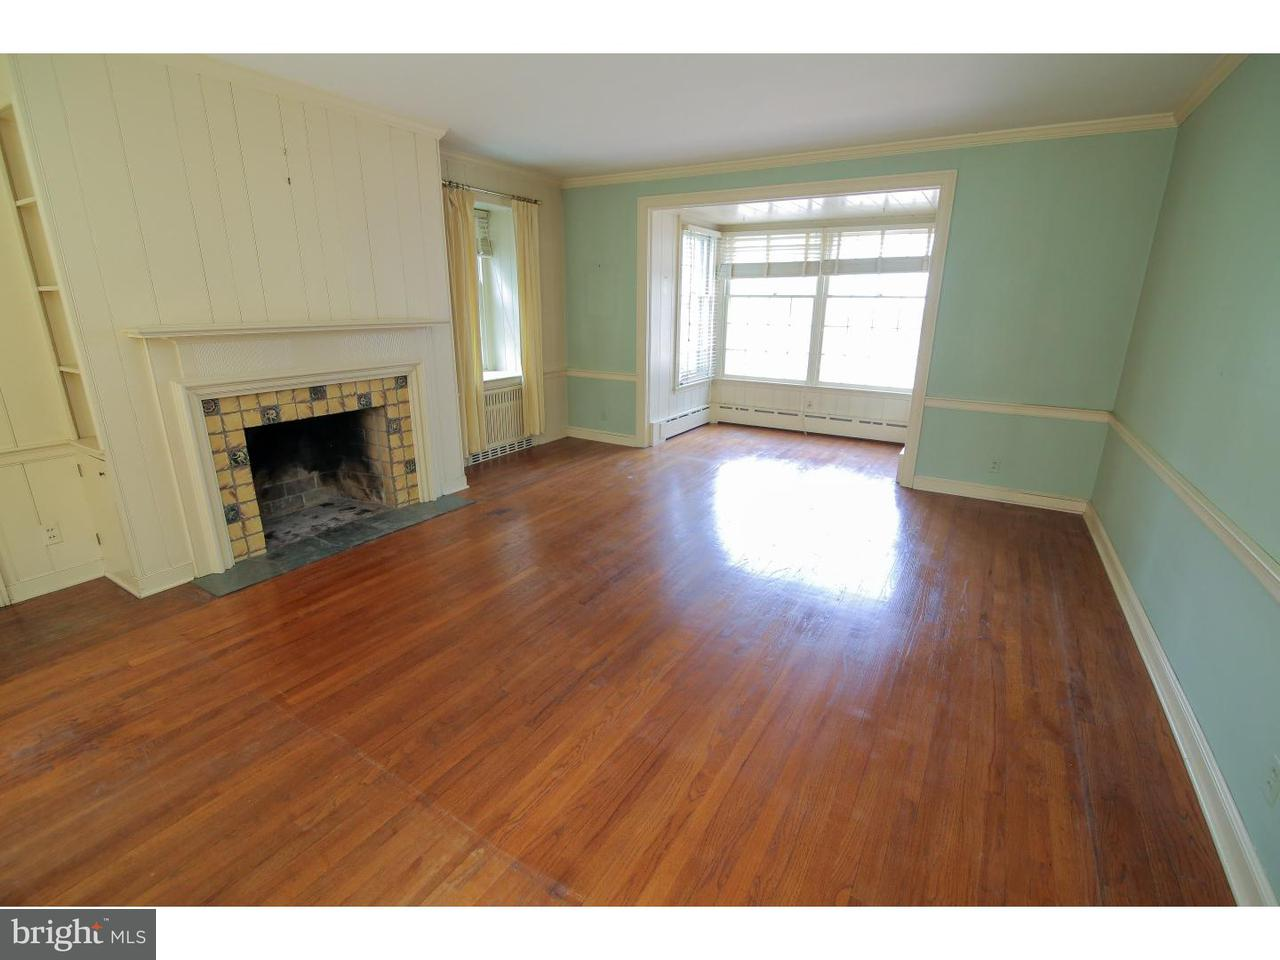 Additional photo for property listing at 156 MULBERRY HILL Road  Barto, Pennsylvanie 19504 États-Unis